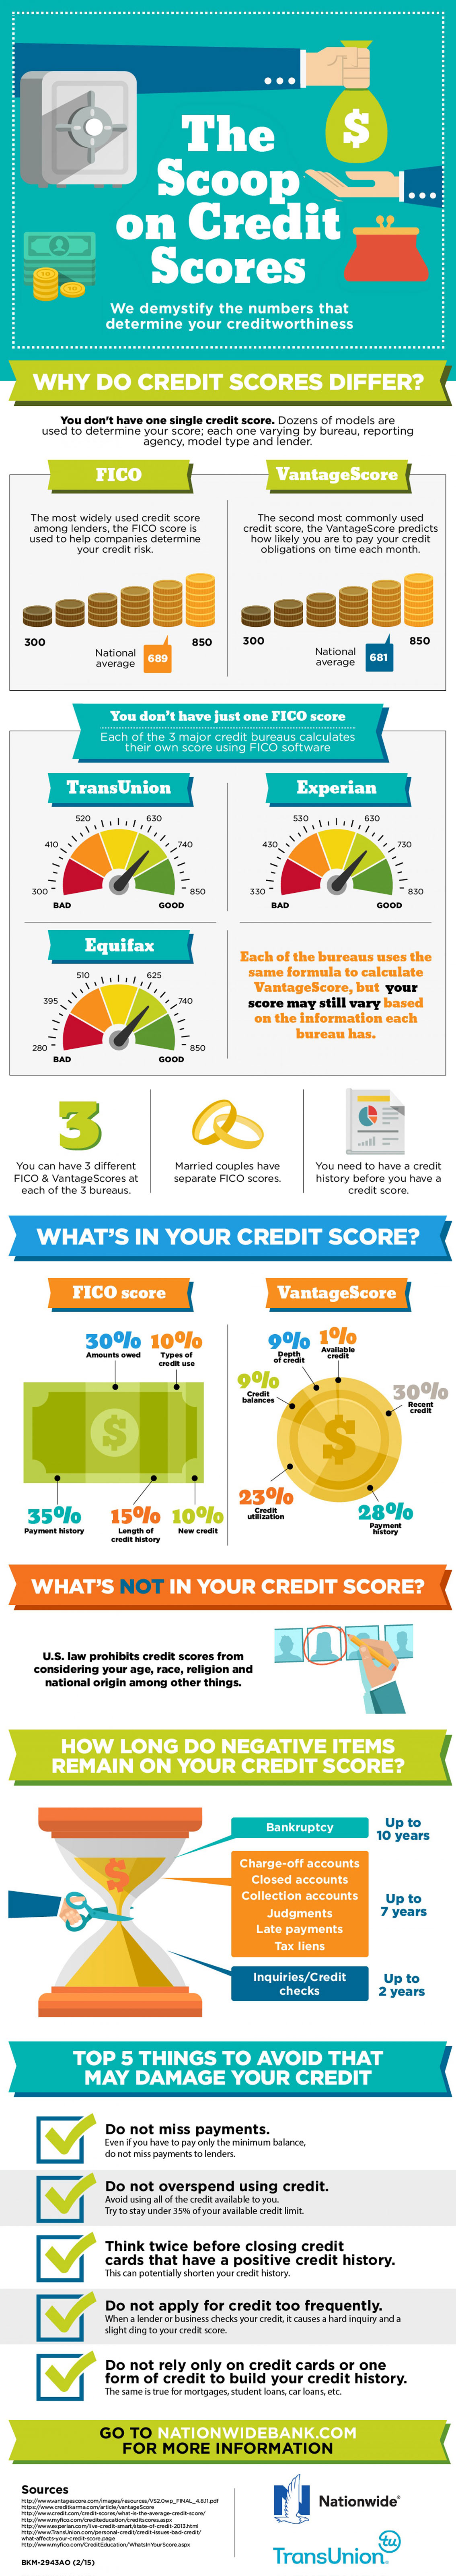 Why Do Credit Scores Differ - Finance Infographic